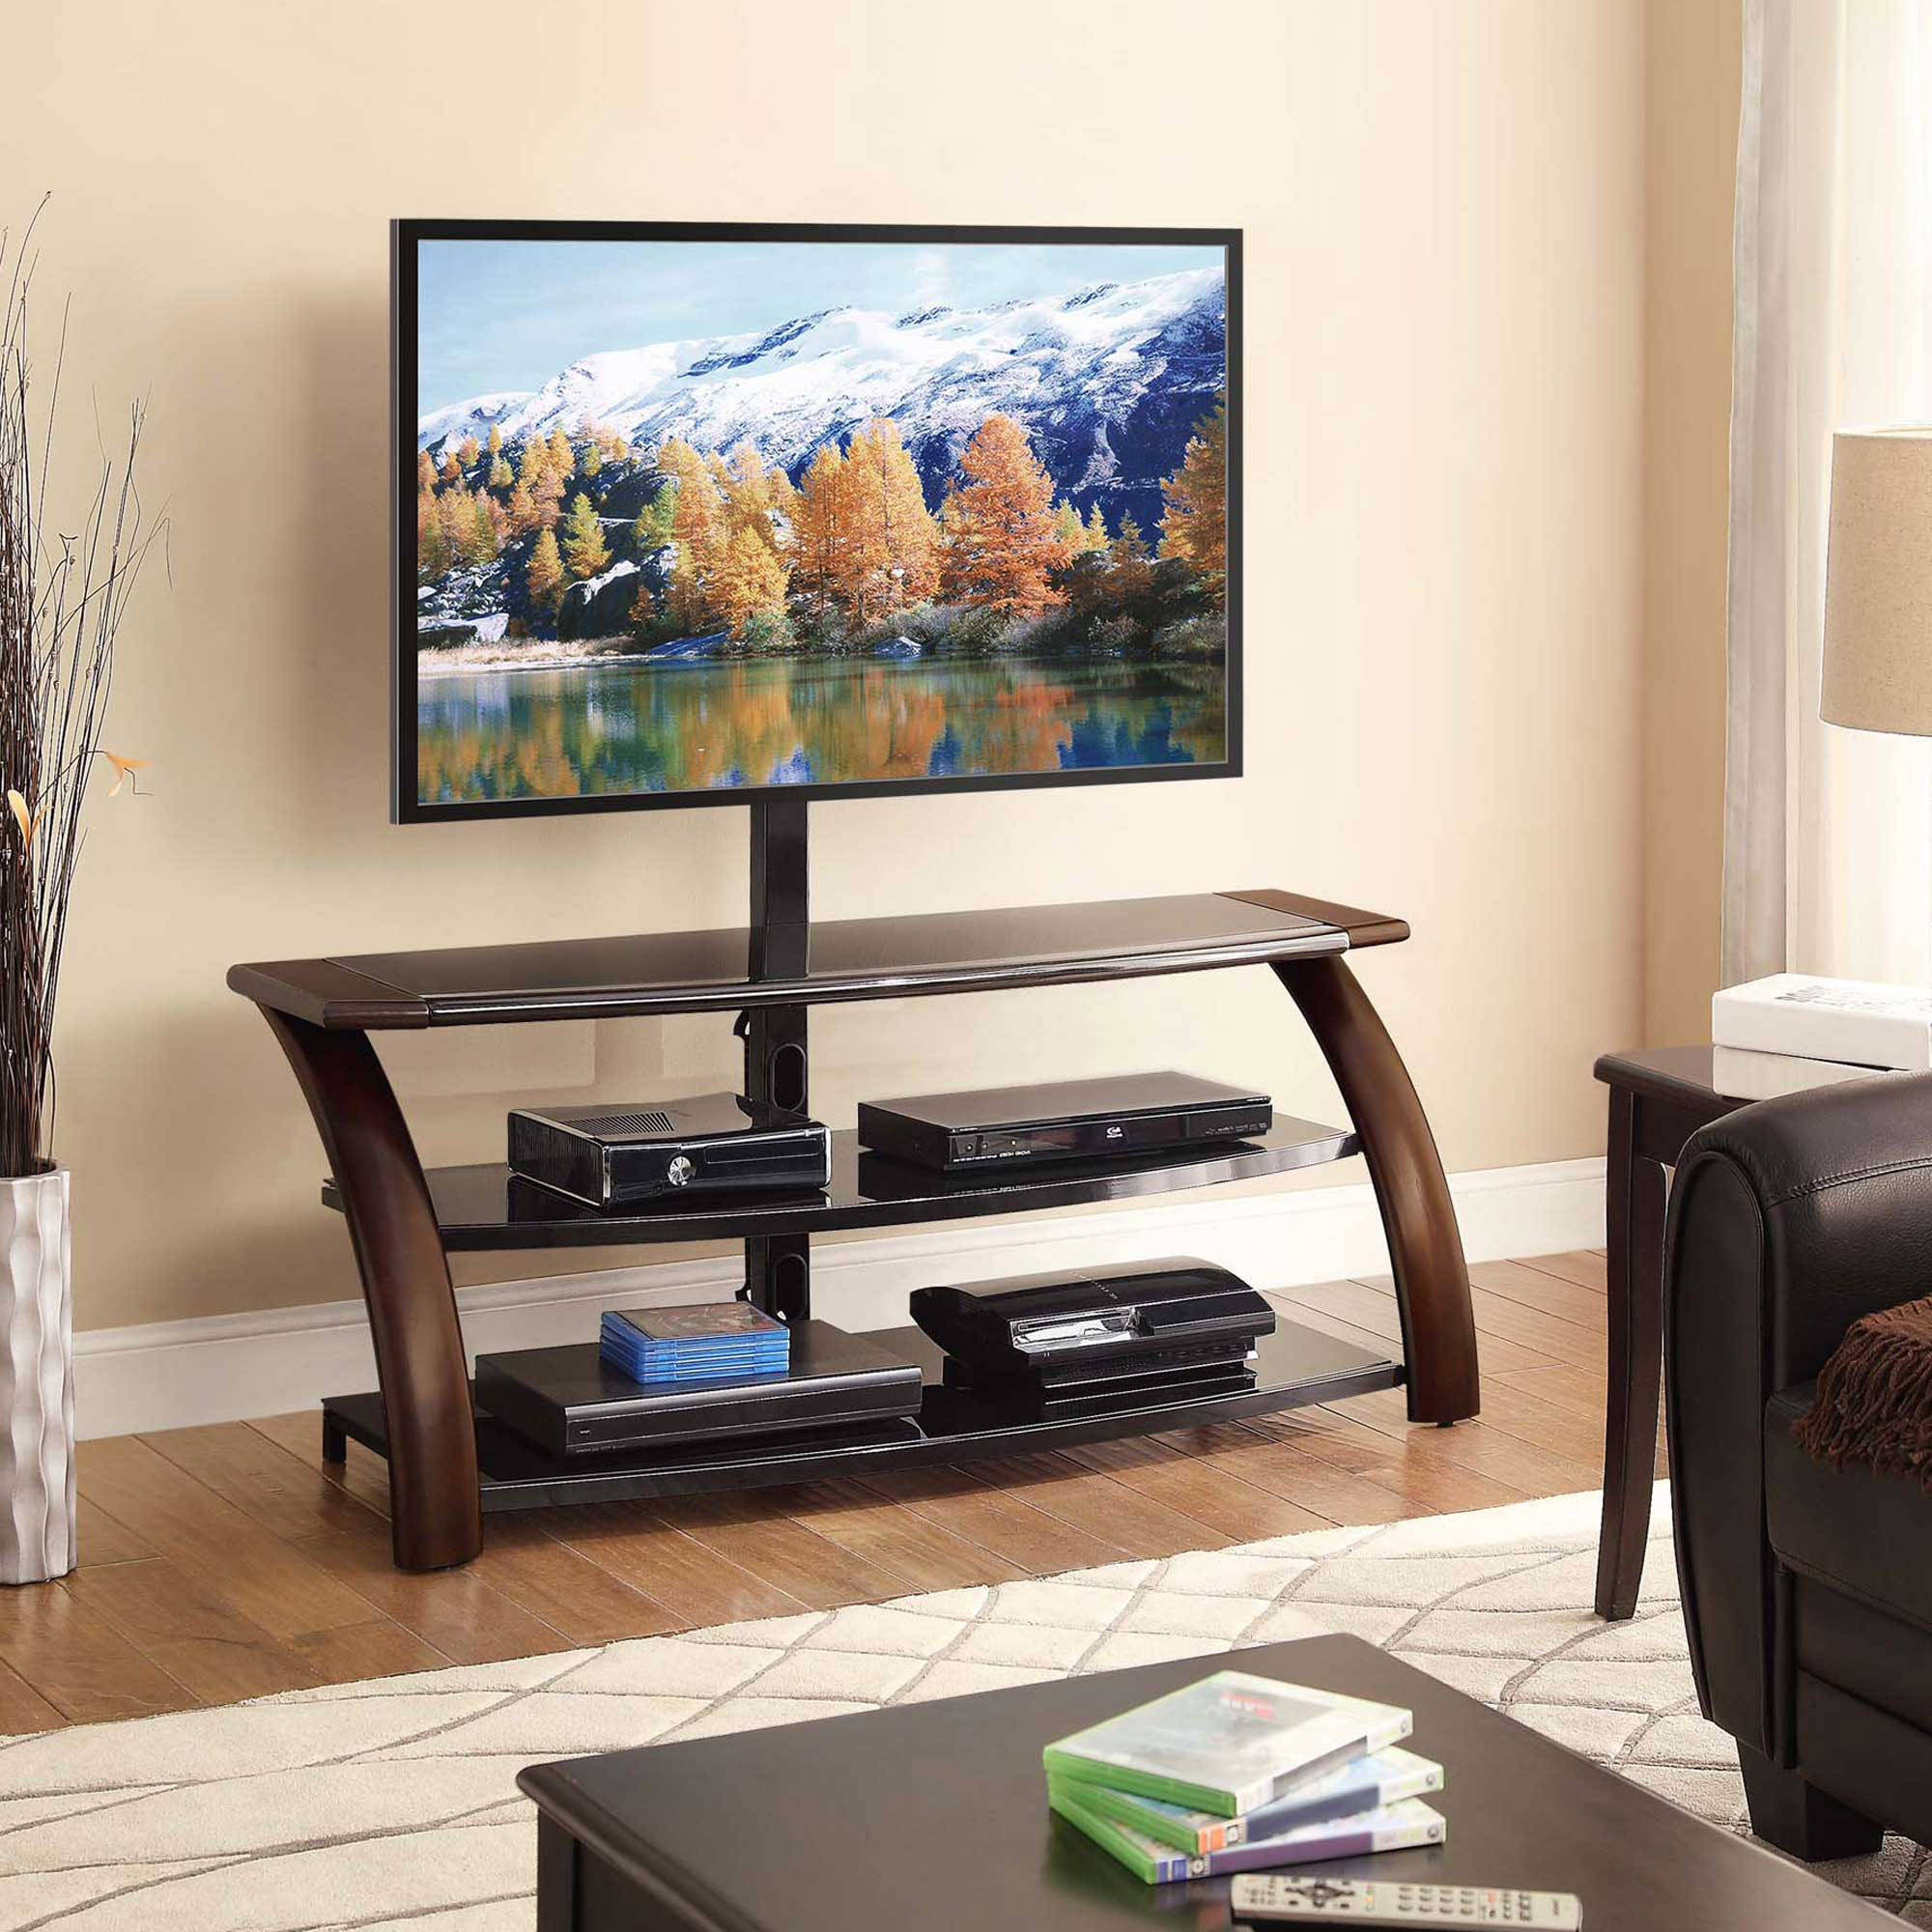 Most Recent Tv Stands With Led Lights In Multiple Finishes With Whalen Payton 3 In 1 Flat Panel Tv Stand For Tvs Up To  (View 1 of 10)